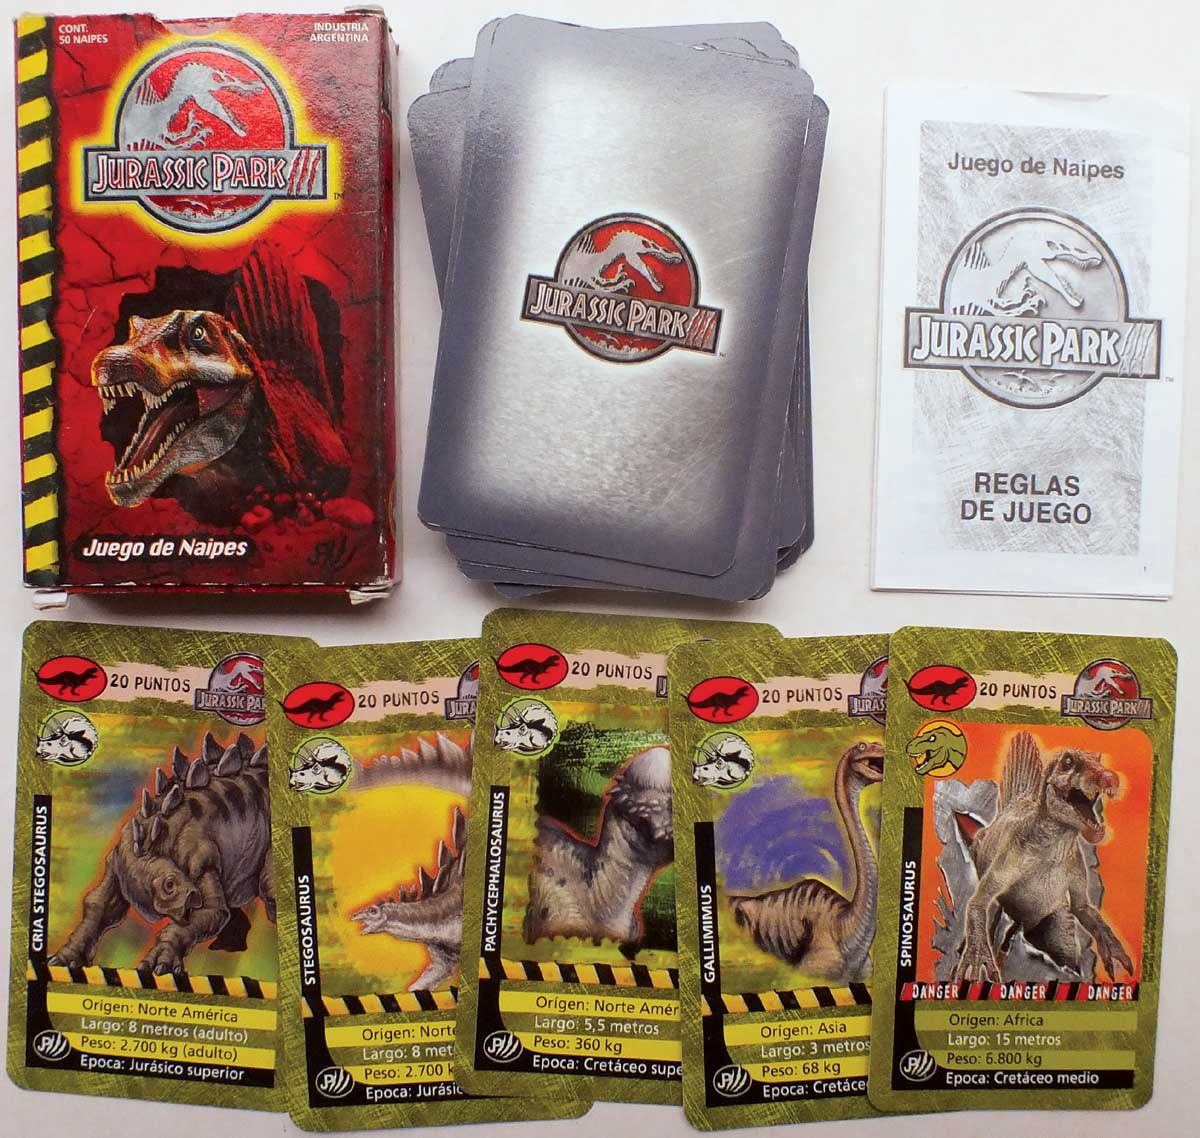 Jurassic Park card game made in Argentina, 2004